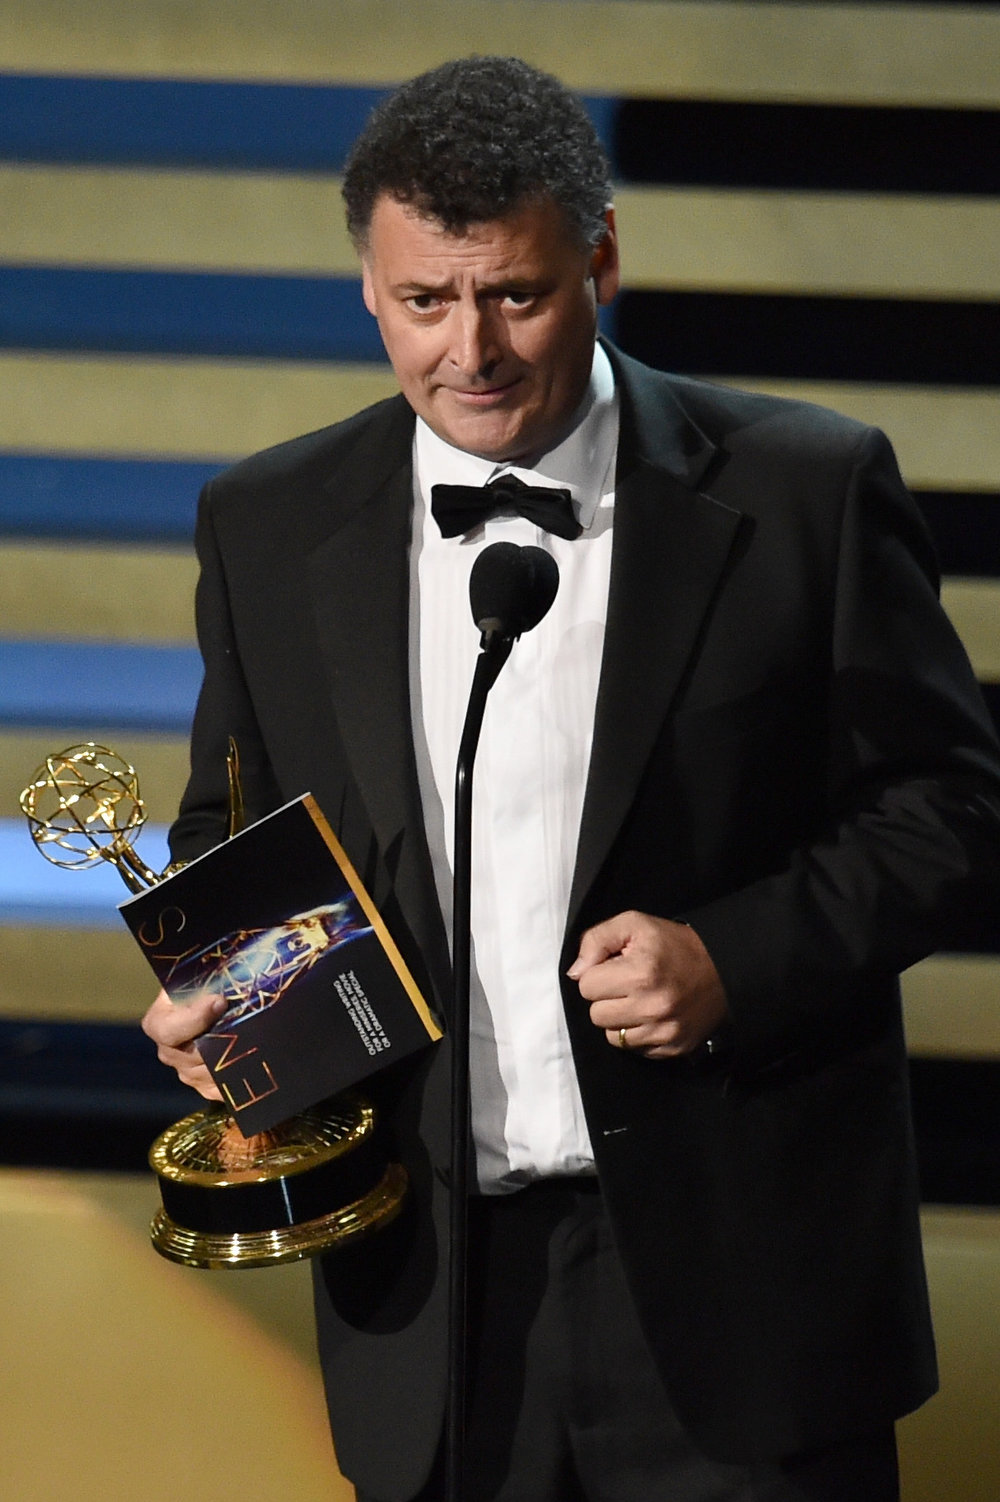 . Writer Steven Moffat accepts Outstanding Writing for a Miniseries, Movie or a Dramatic Special for \'Sherlock: His Last Vow\' onstage at the 66th Annual Primetime Emmy Awards held at Nokia Theatre L.A. Live on August 25, 2014 in Los Angeles, California.  (Photo by Kevin Winter/Getty Images)